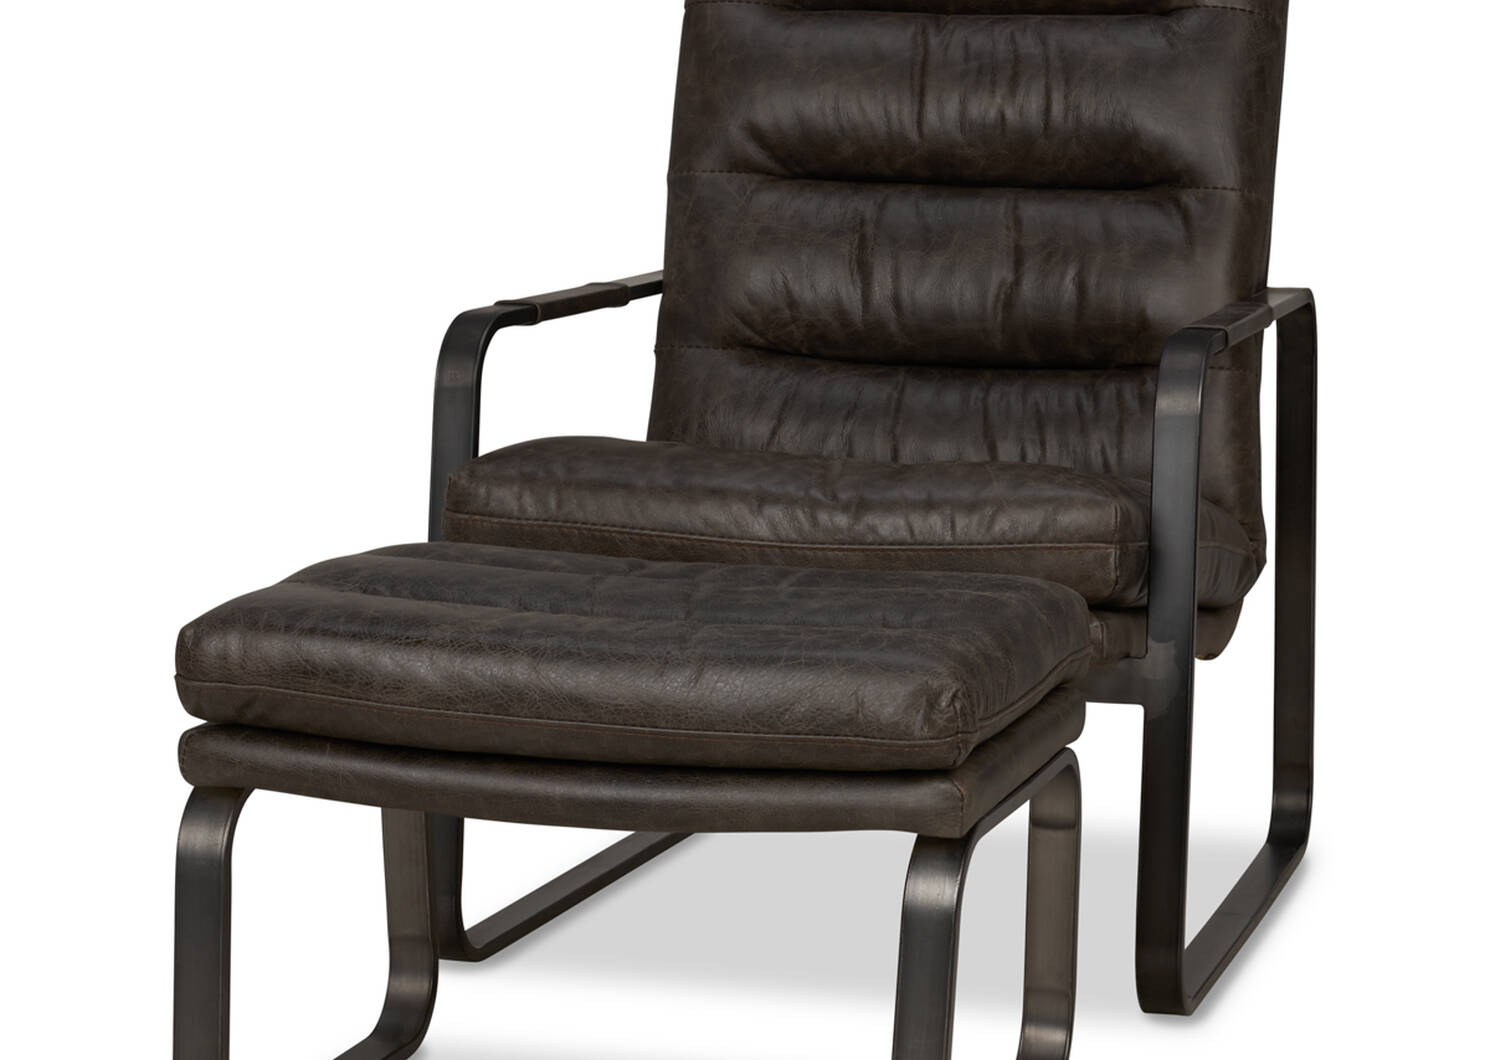 Donnelly Leather Ottoman -Hurst Cocoa